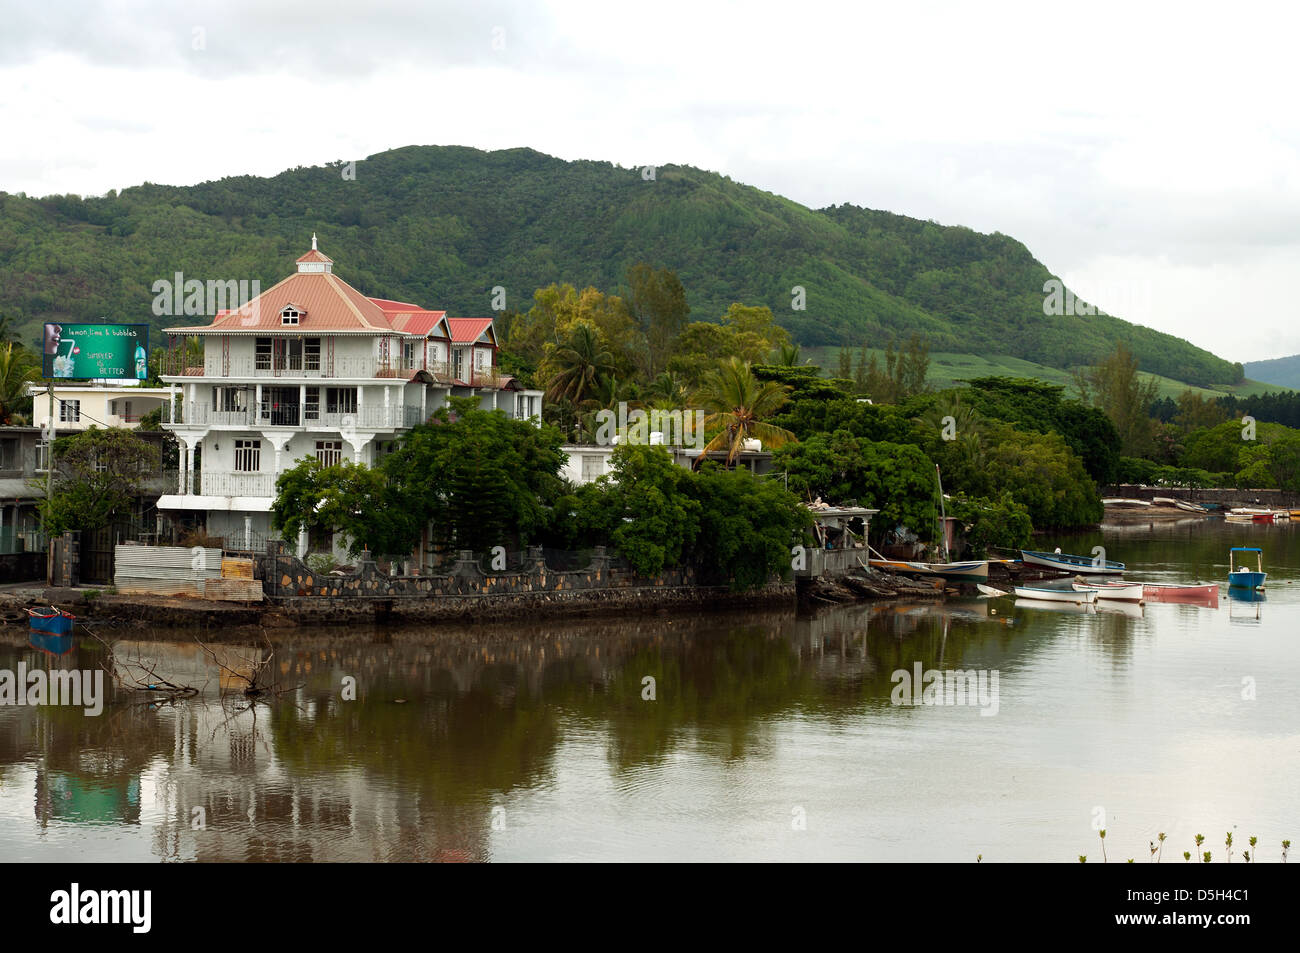 riviere de la chaux with boats and houses, mahebourg, mauritius - Stock Image